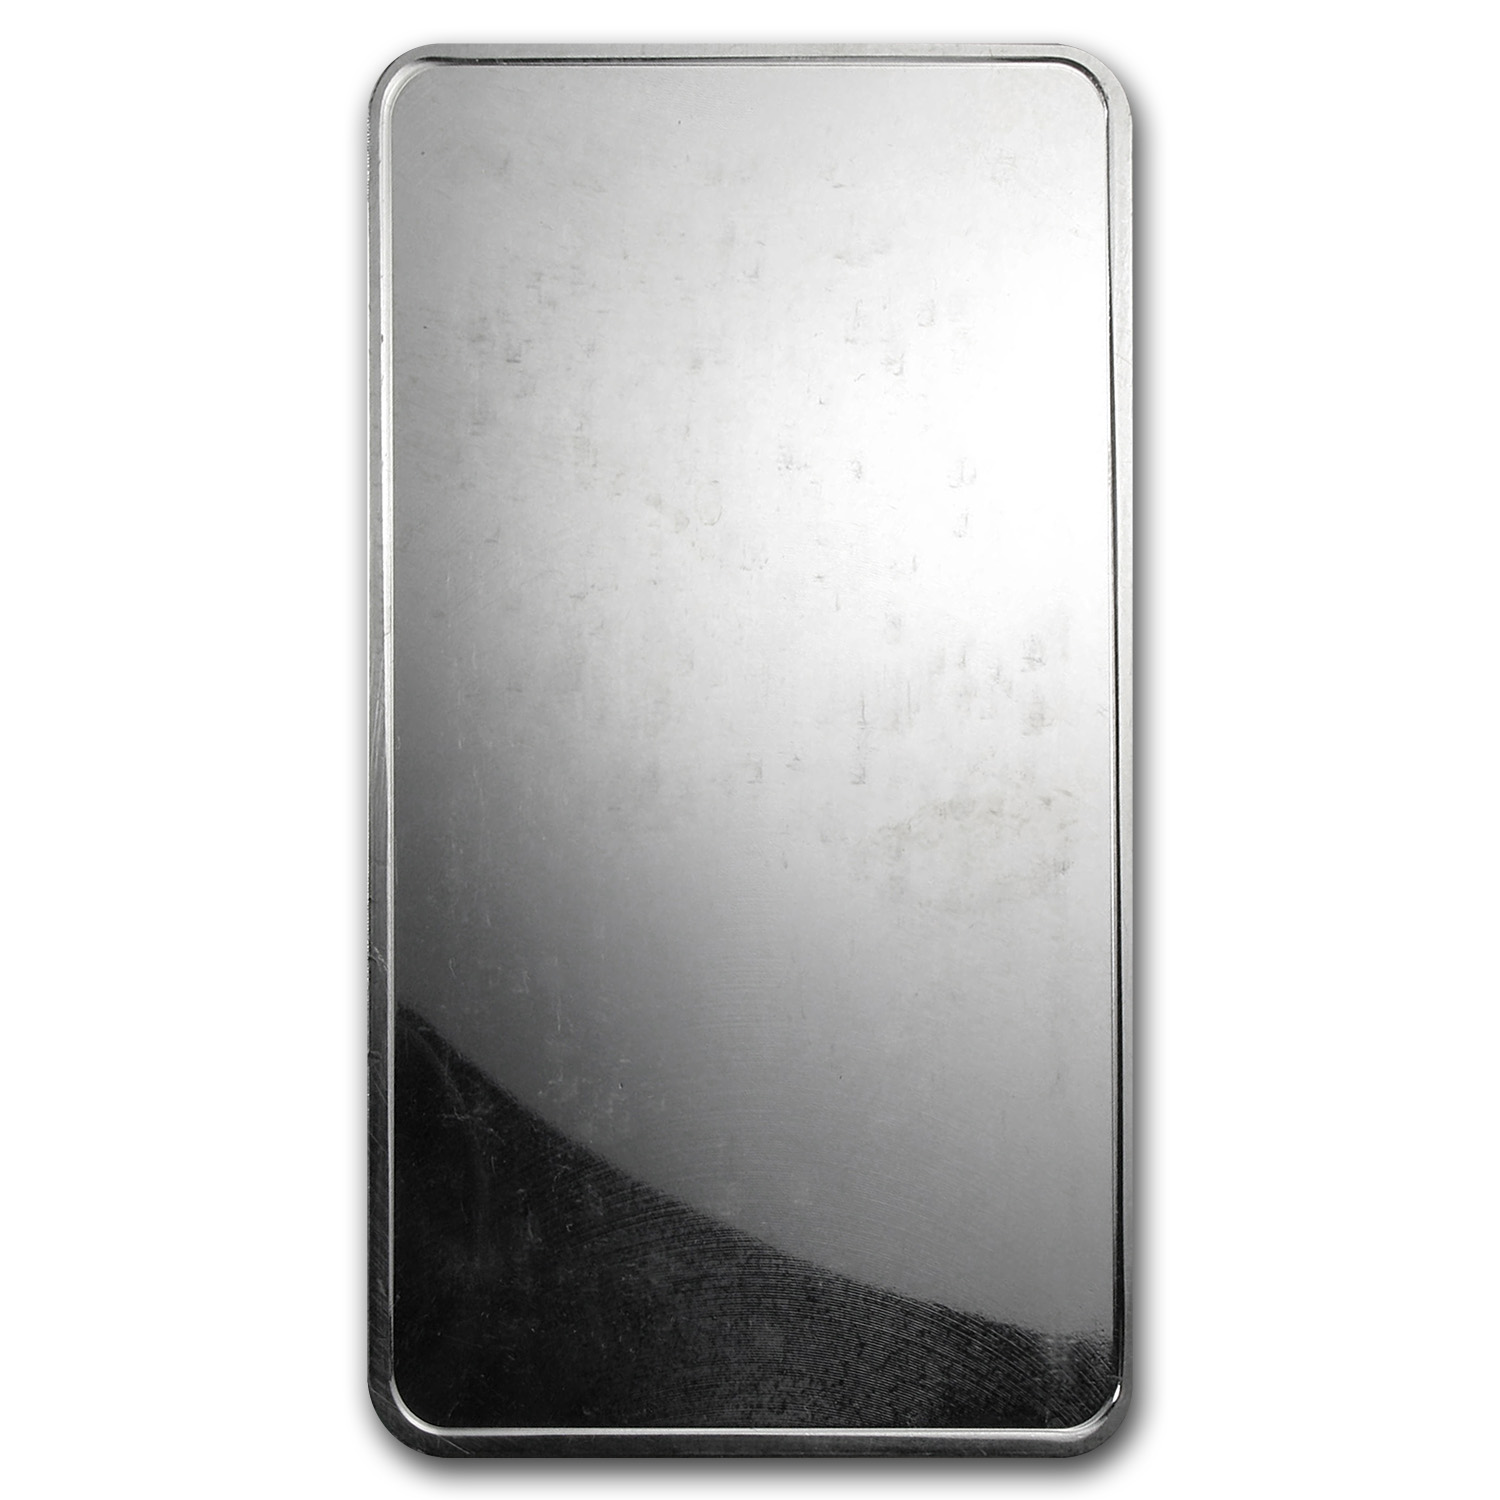 100 oz Silver Bar - Sunshine (Struck)